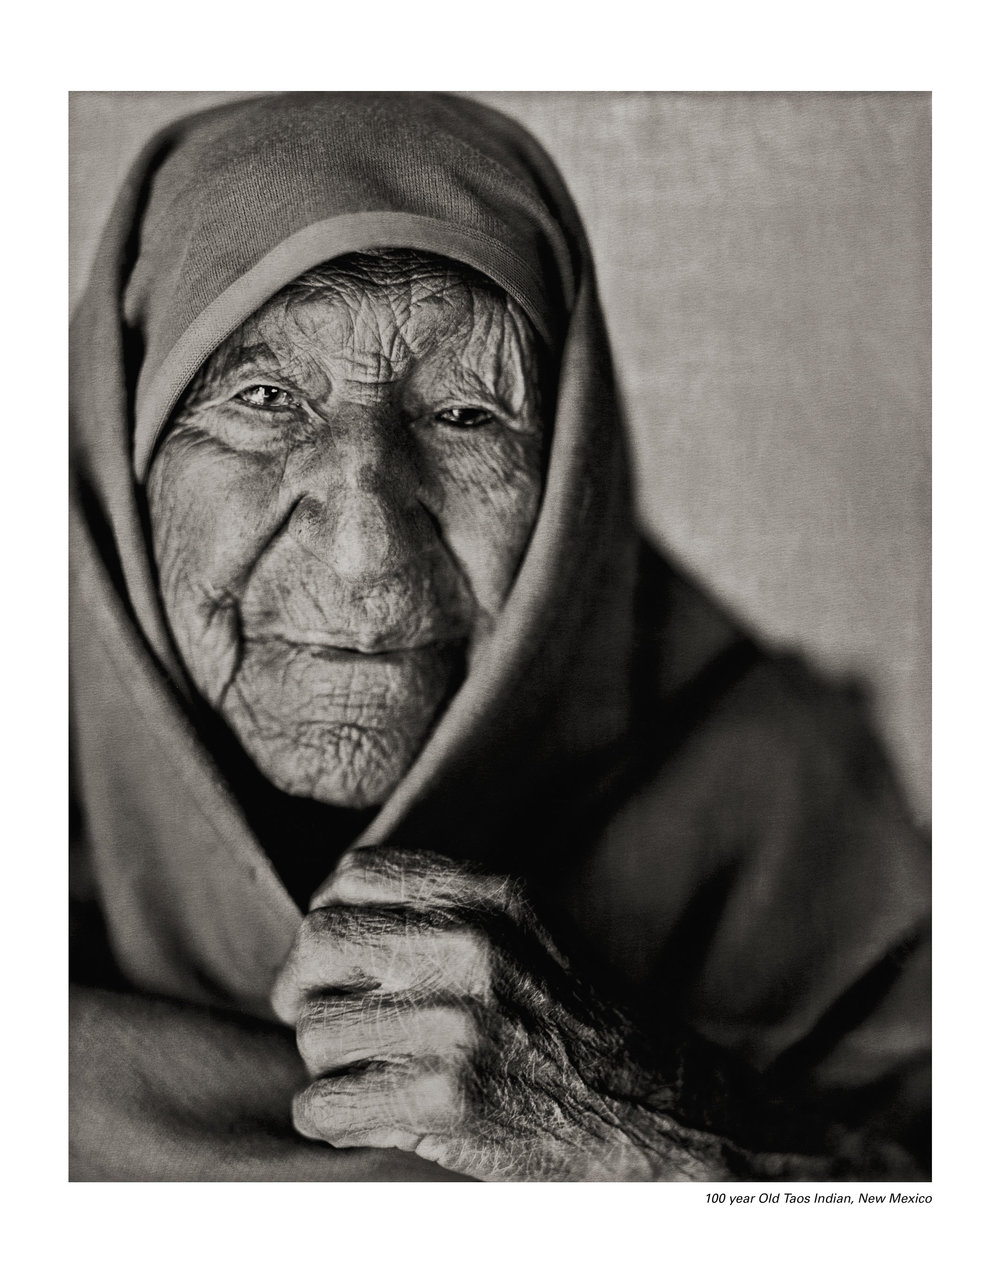 nf_100year_Old_Taos_Indian_New_Mexico.jpg